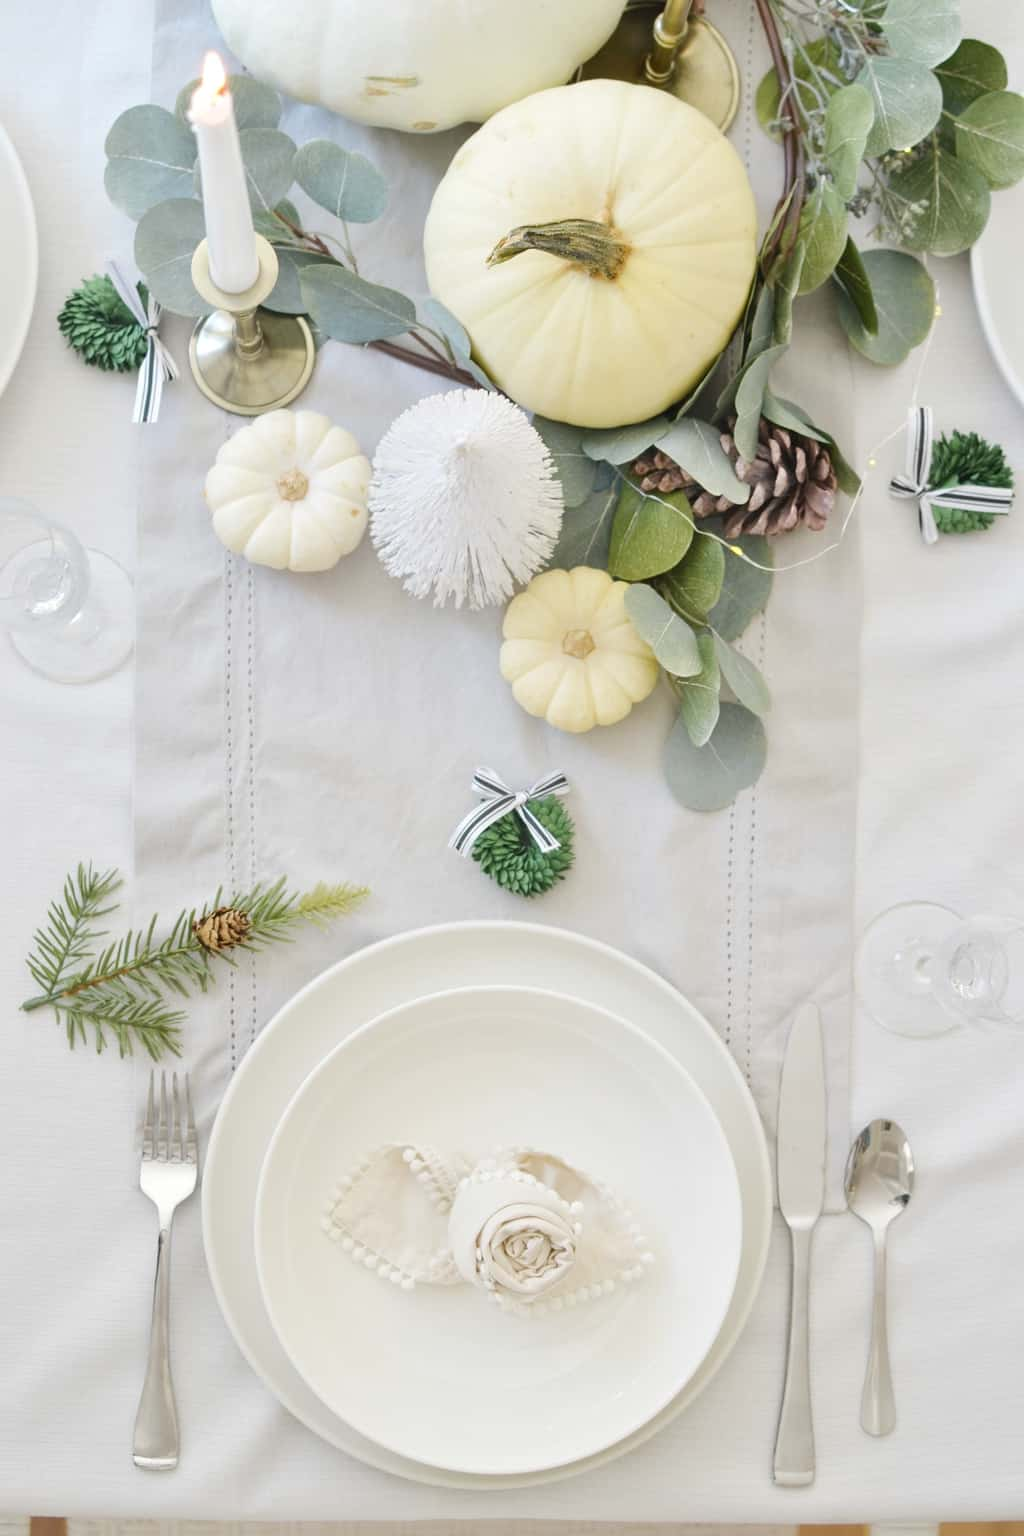 a plate on a table with candle, pumpkins and christmas tree